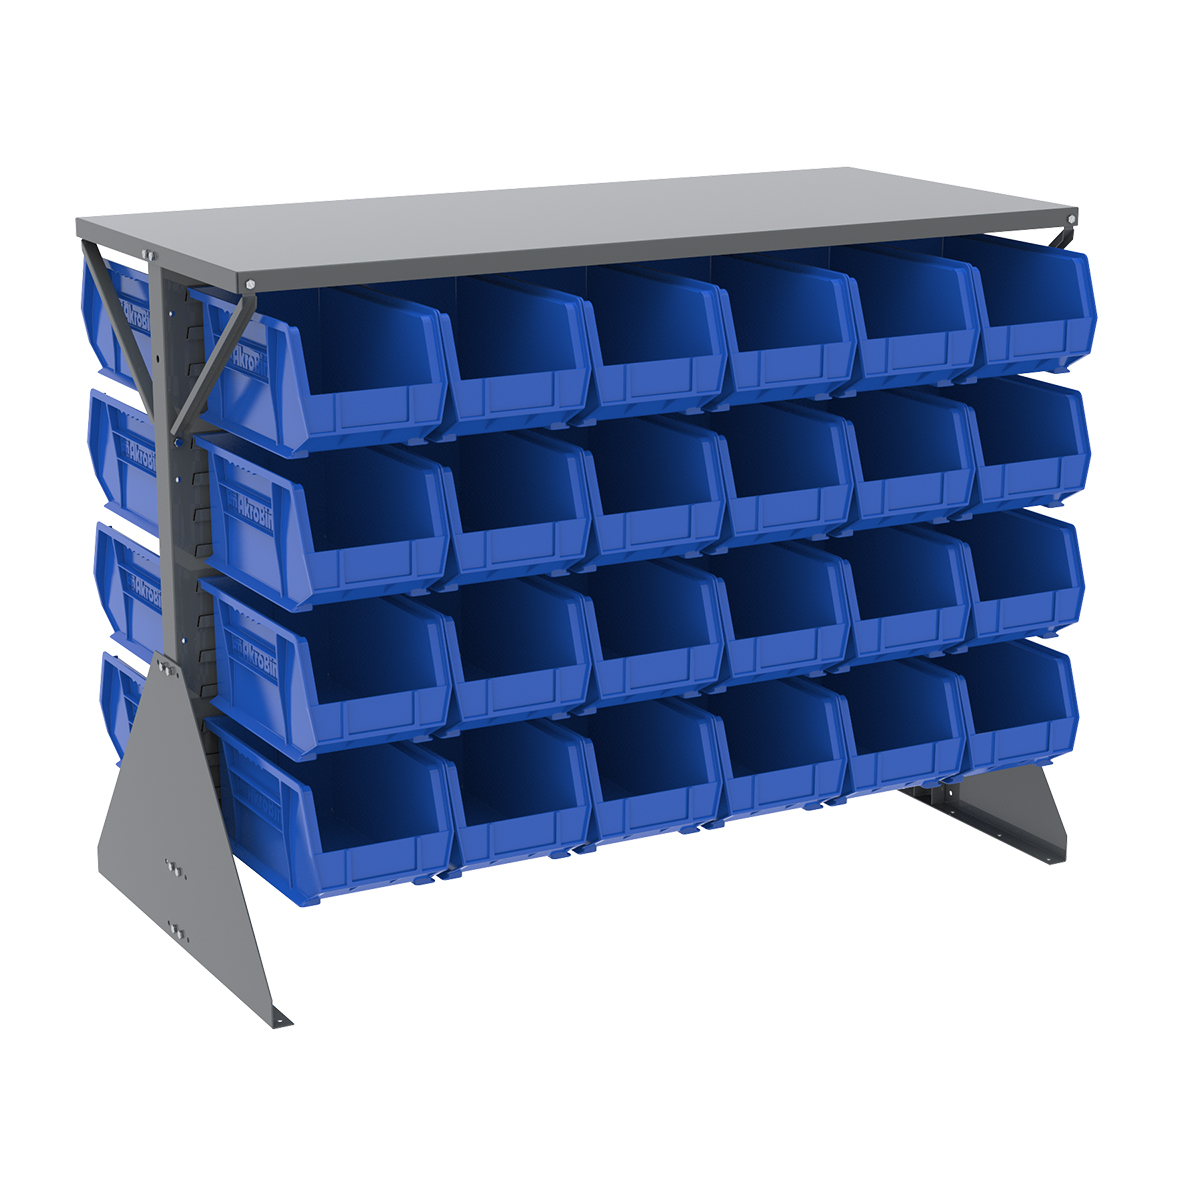 Item DISCONTINUED by Manufacturer.  Low Profile Floor Rack, 2-Sided, Shelf w/ 48 AkroBins, Gray/Blue (30606GY240B).  This item sold in carton quantities of 1.